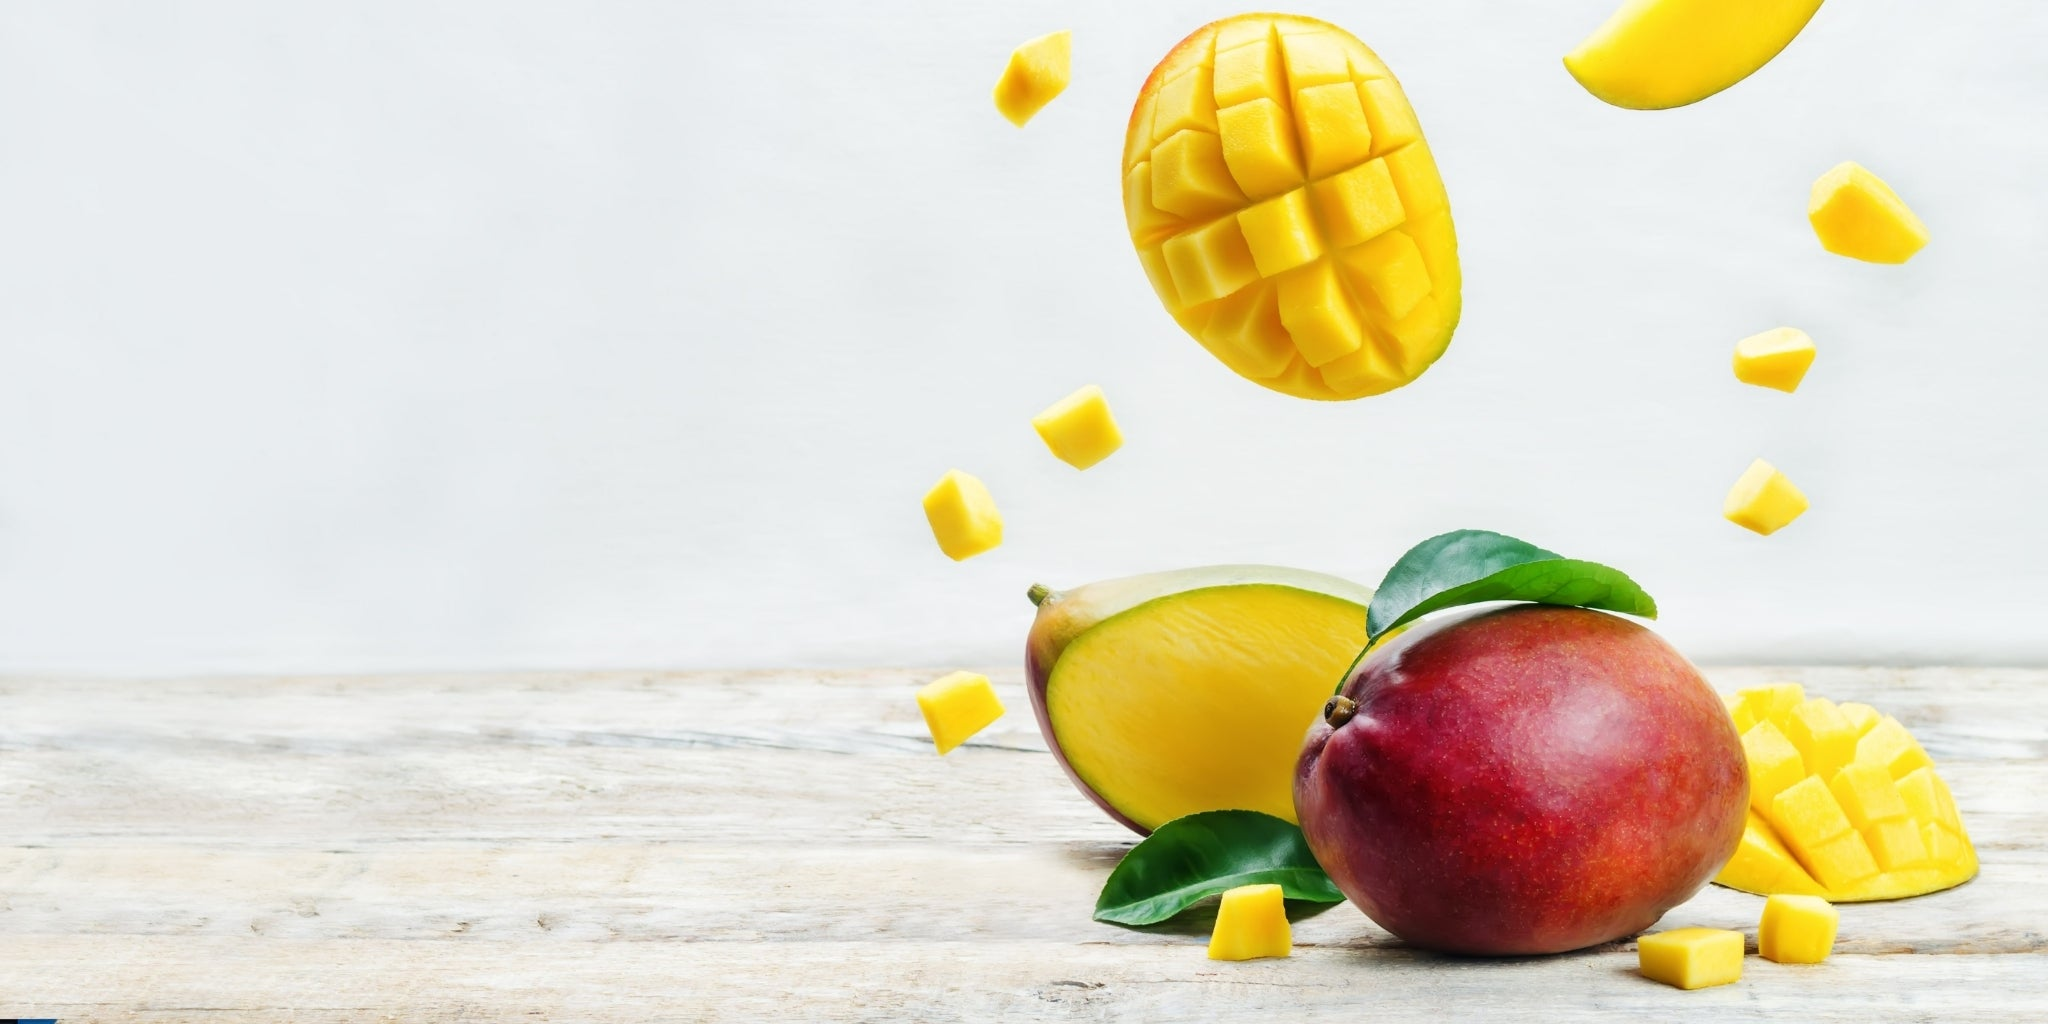 4 Benefits of Mango for Hair That You Should Know